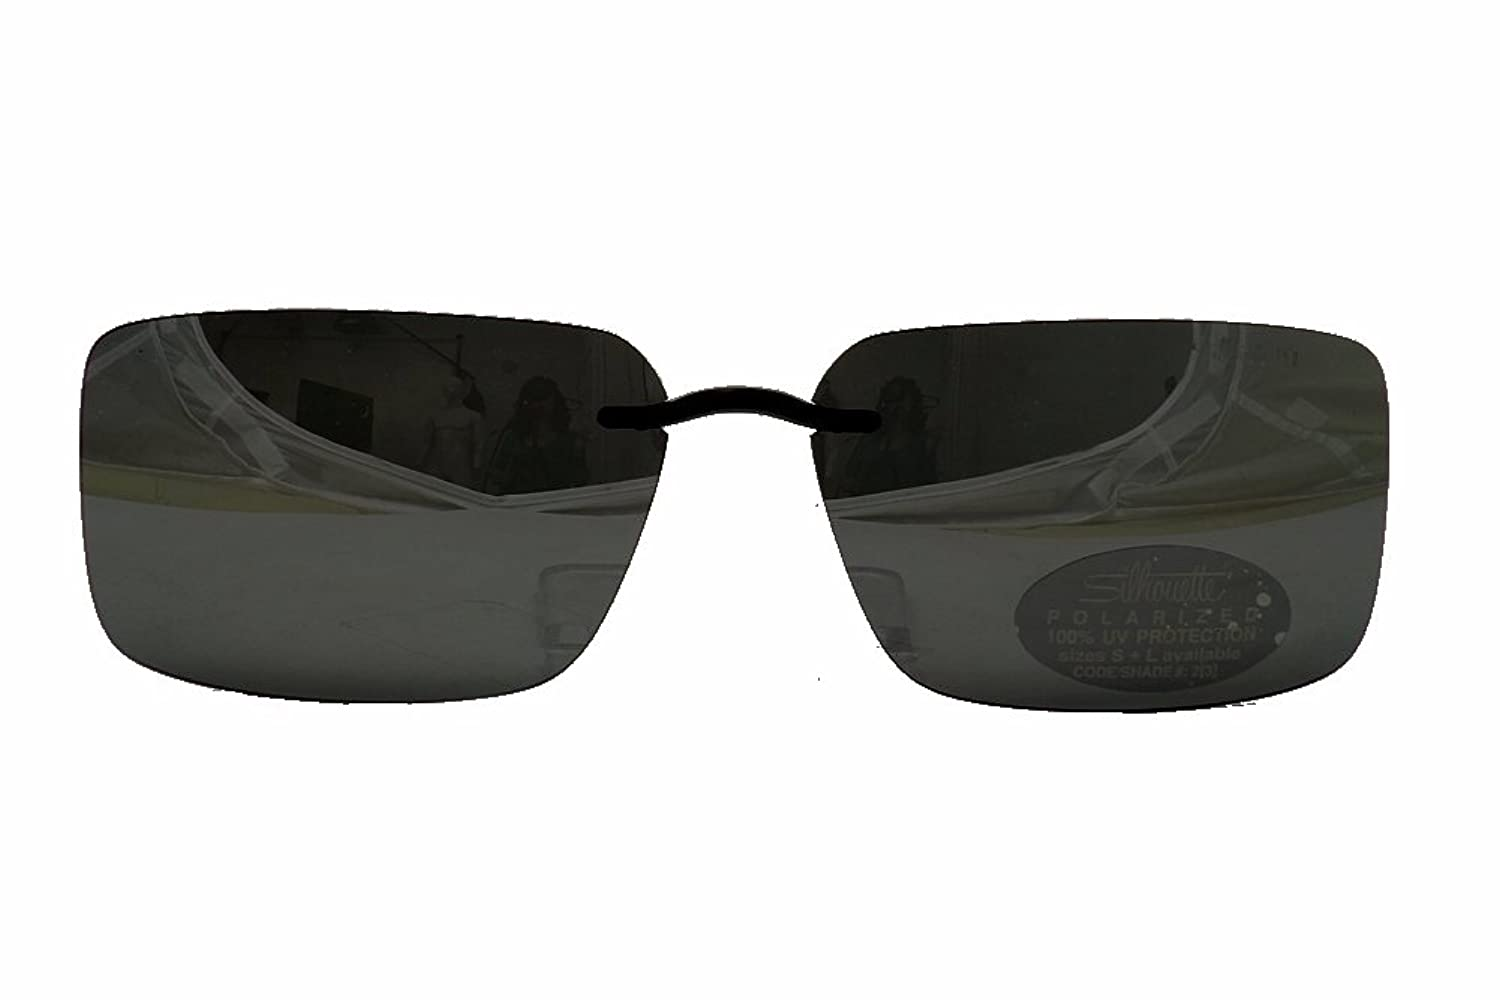 7b23ddef26 delicate Silhouette Sunglasses Clip-On 5090 A1 0301 Polarized Gray ...